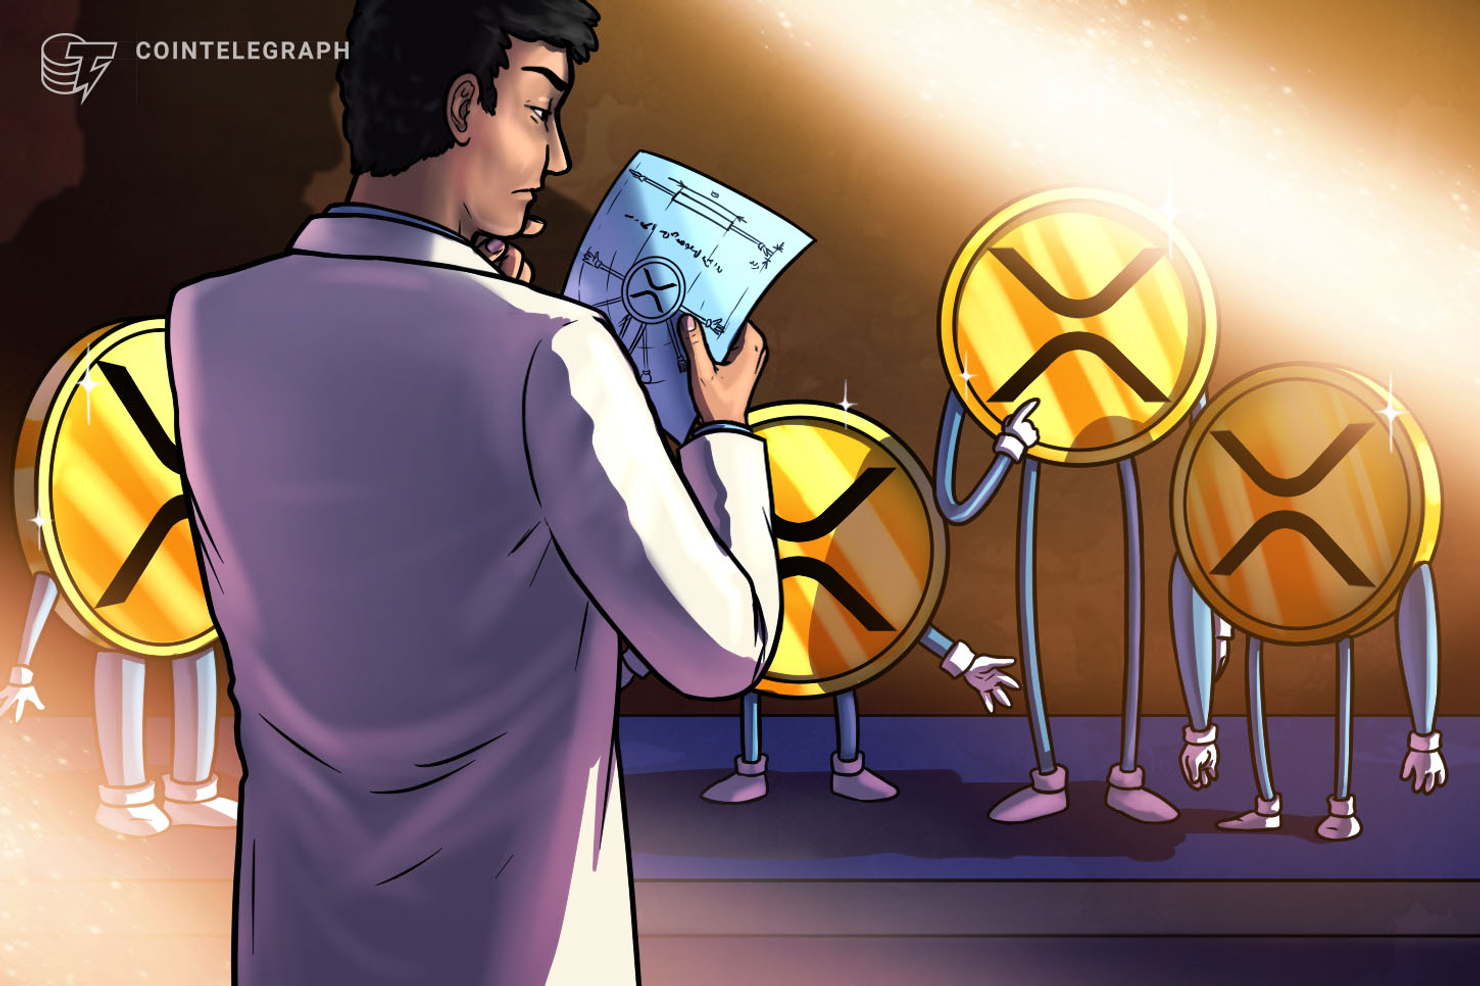 XRP Price Crashes by 40% on Beaxy Exchange After Coordinated Sell-Off